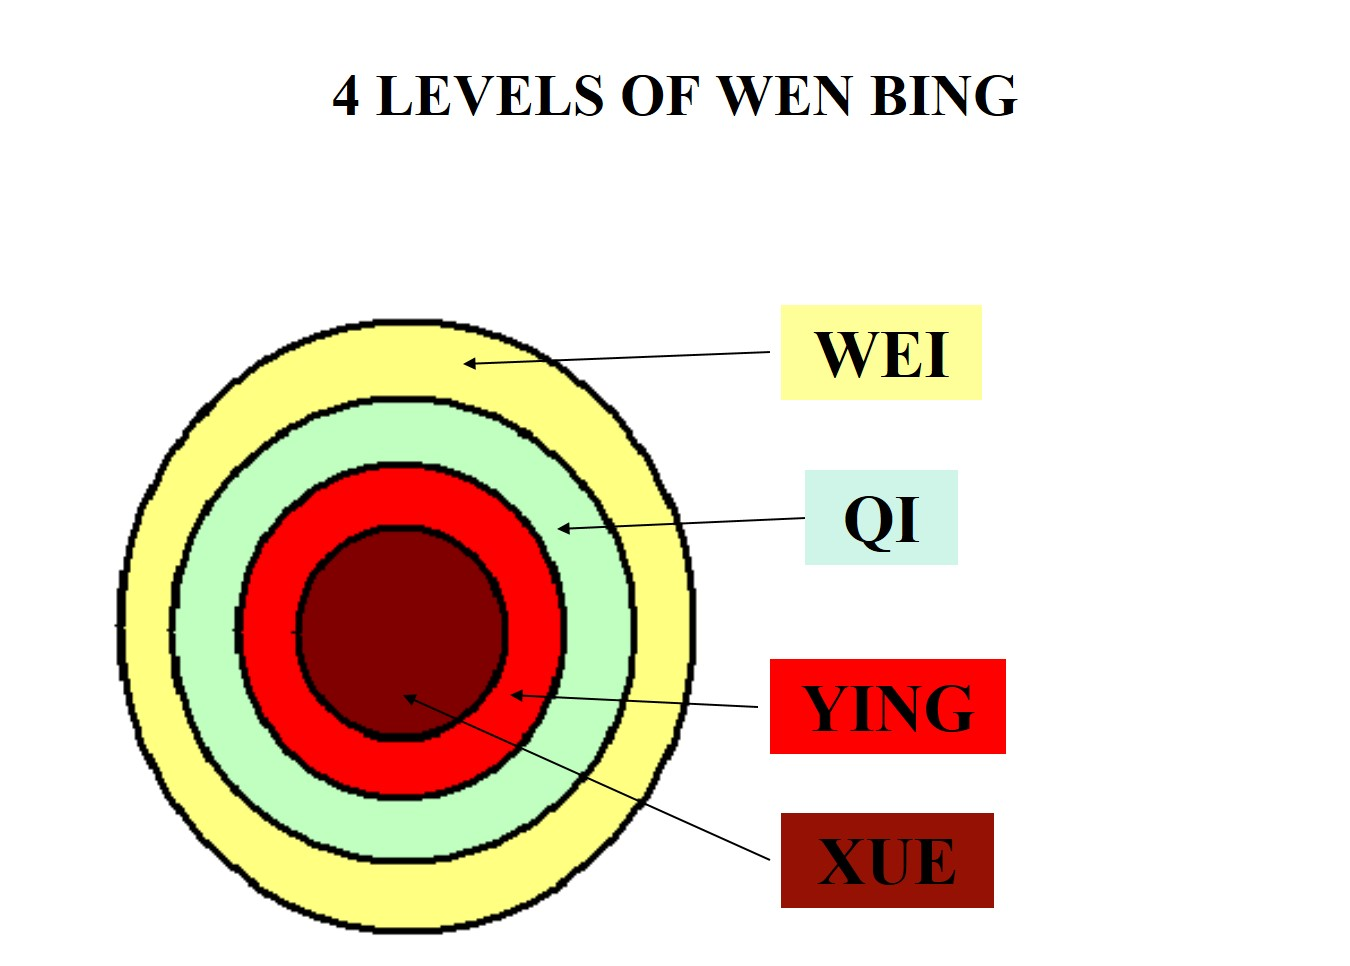 the wei level of the 4 levels broadly corresponds to the tai yang stage of the 6 stages the former deals with wind heat and the latter with wind cold  [ 1350 x 966 Pixel ]